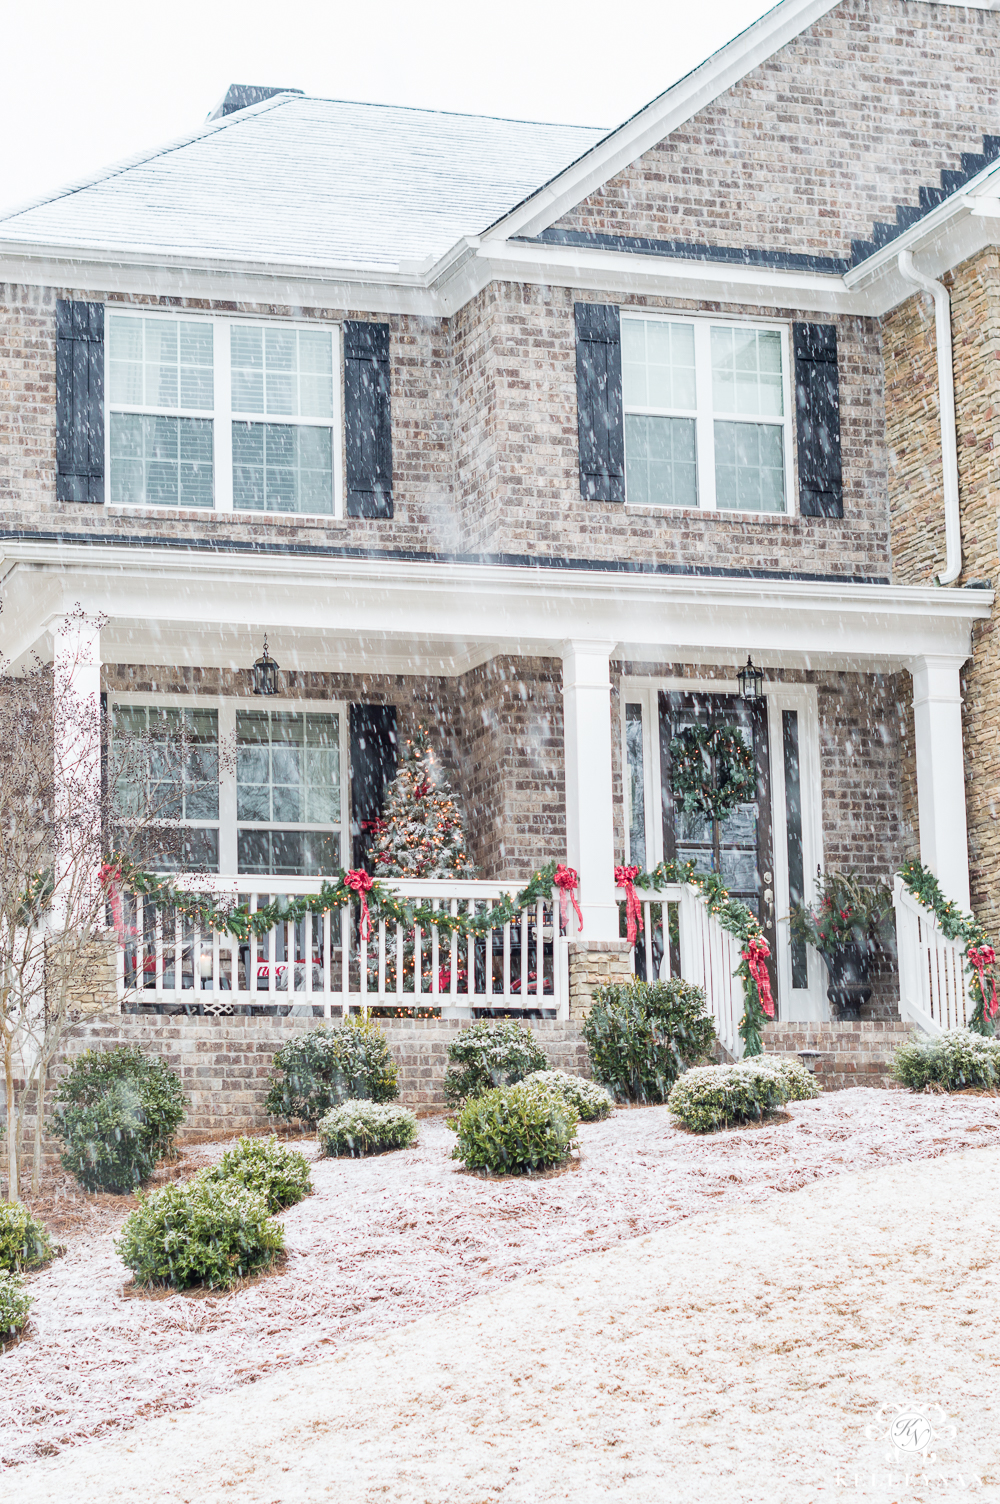 Snowy Christmas Front Porch on Brick Home with Traditional Decorations